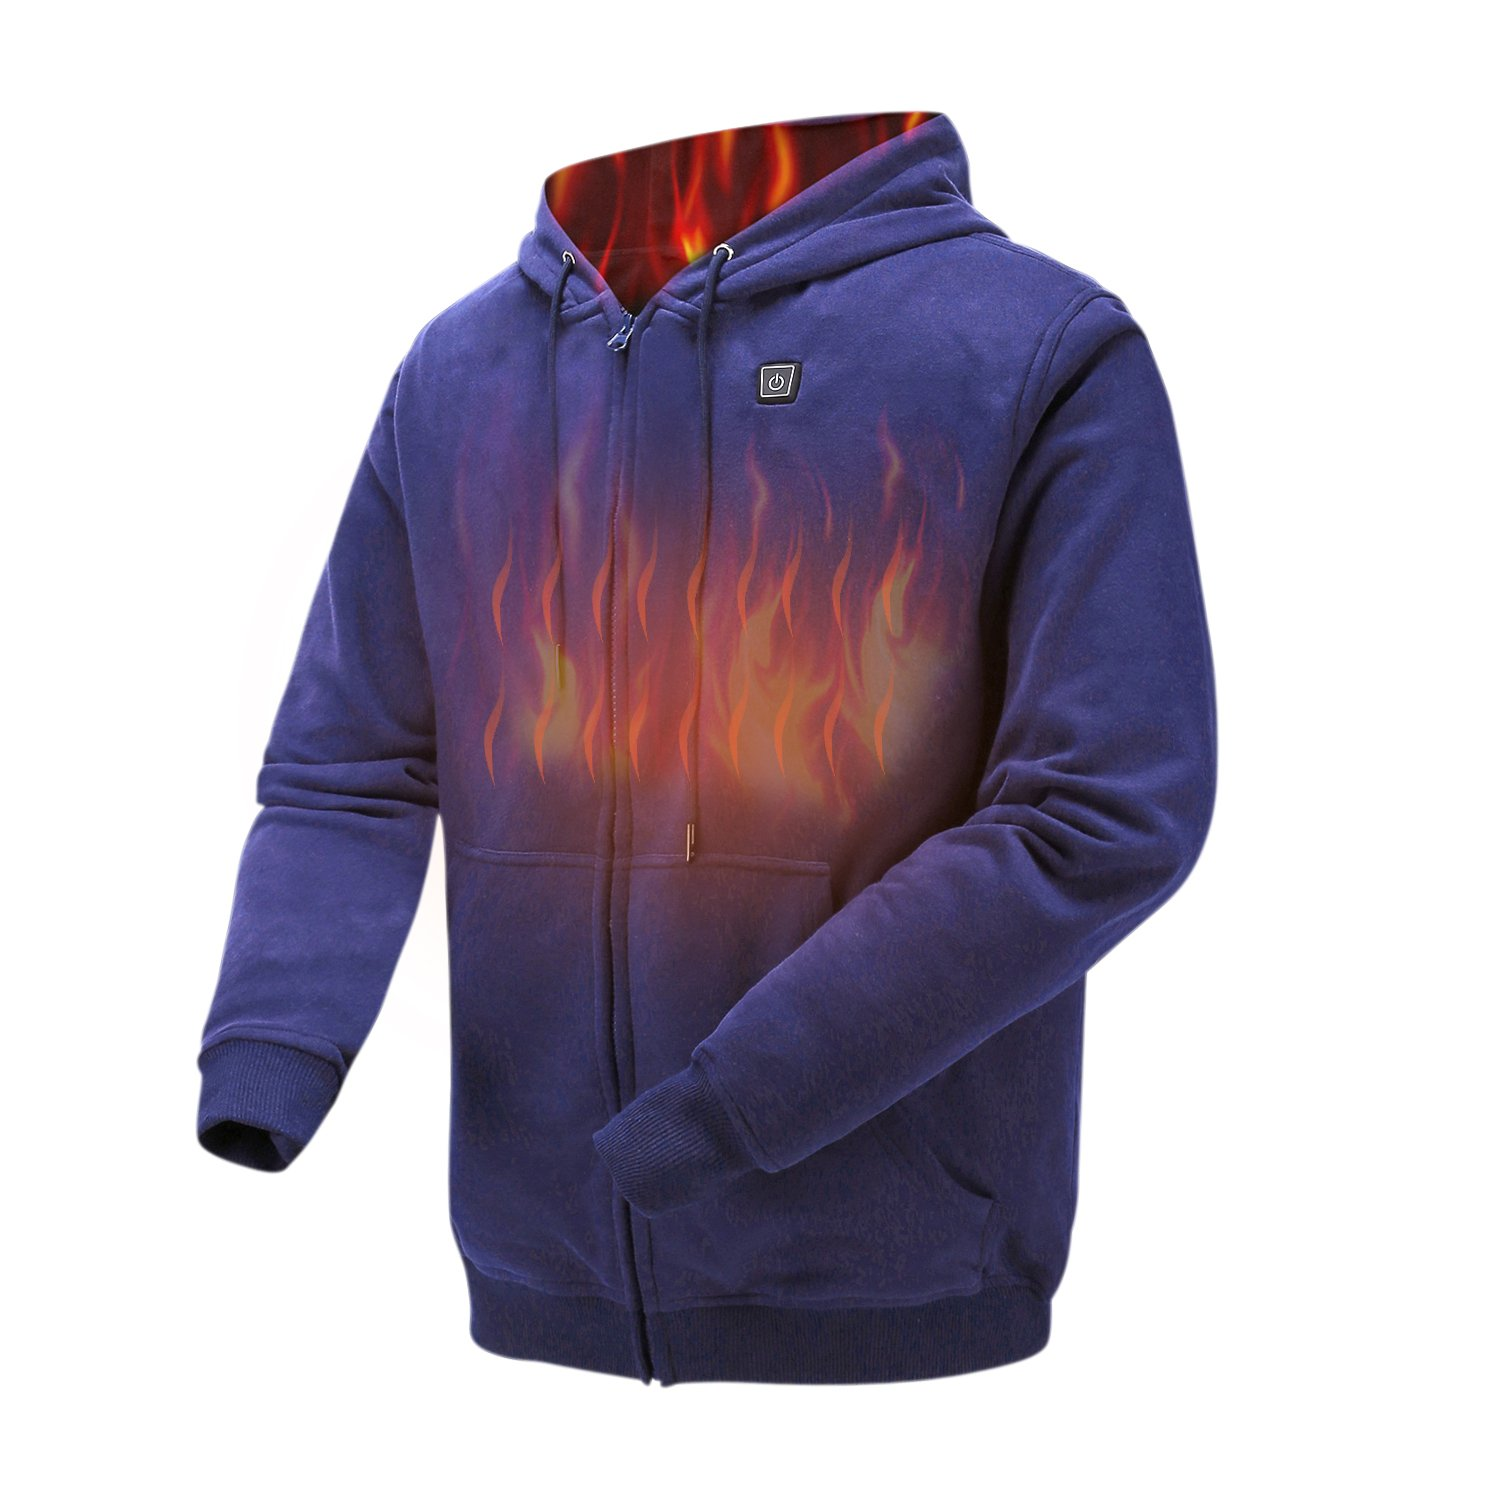 Colcham Heated Hoodie,Outdoor Work Heated Jacket Kit With 7.4 V Battery and Charger (Navy-M)